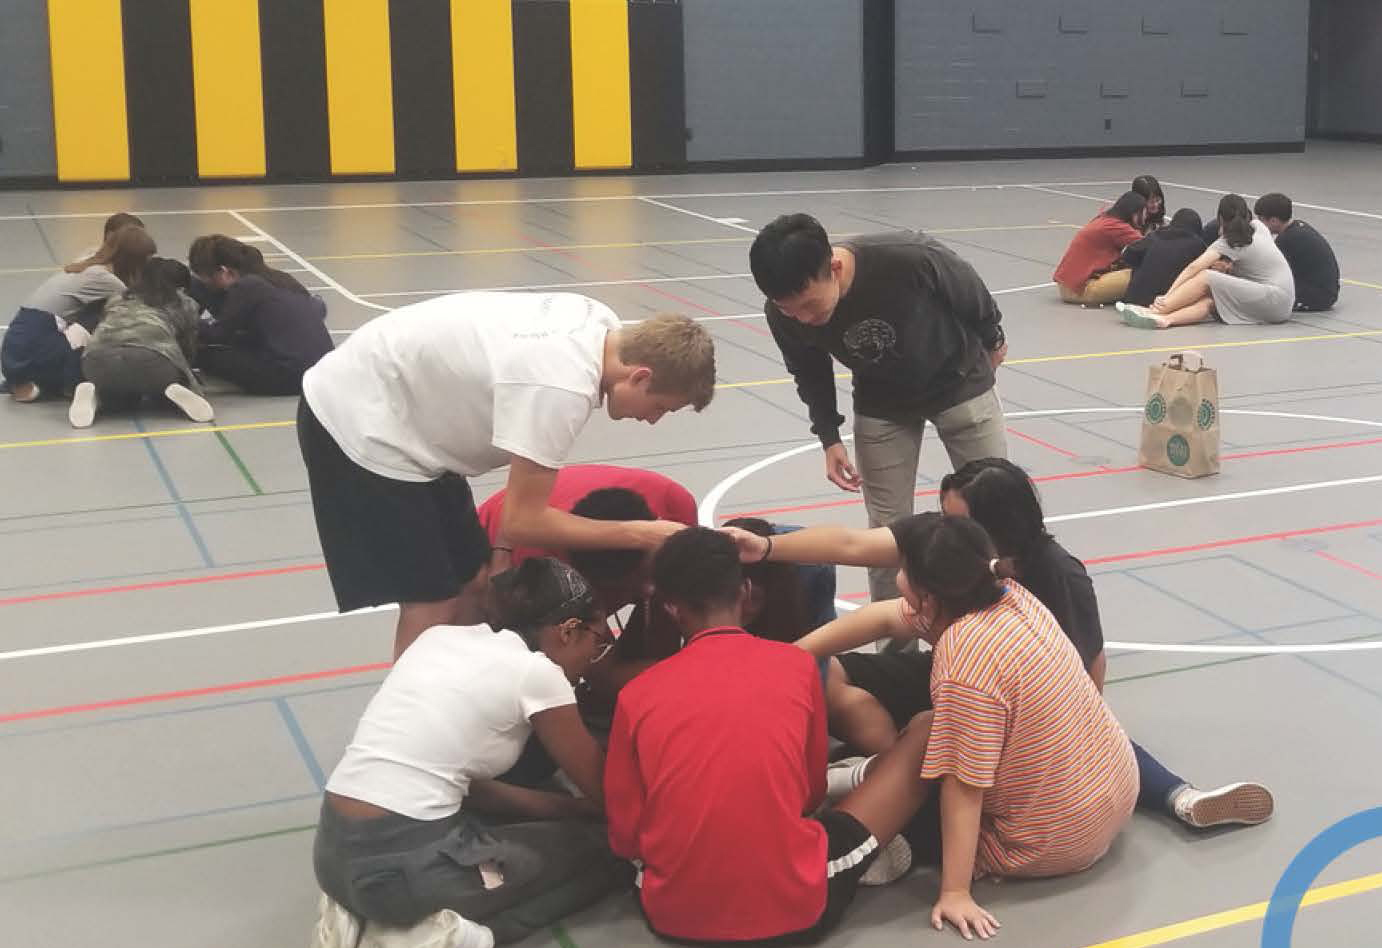 students in the gym doing an activity sitting in a circle